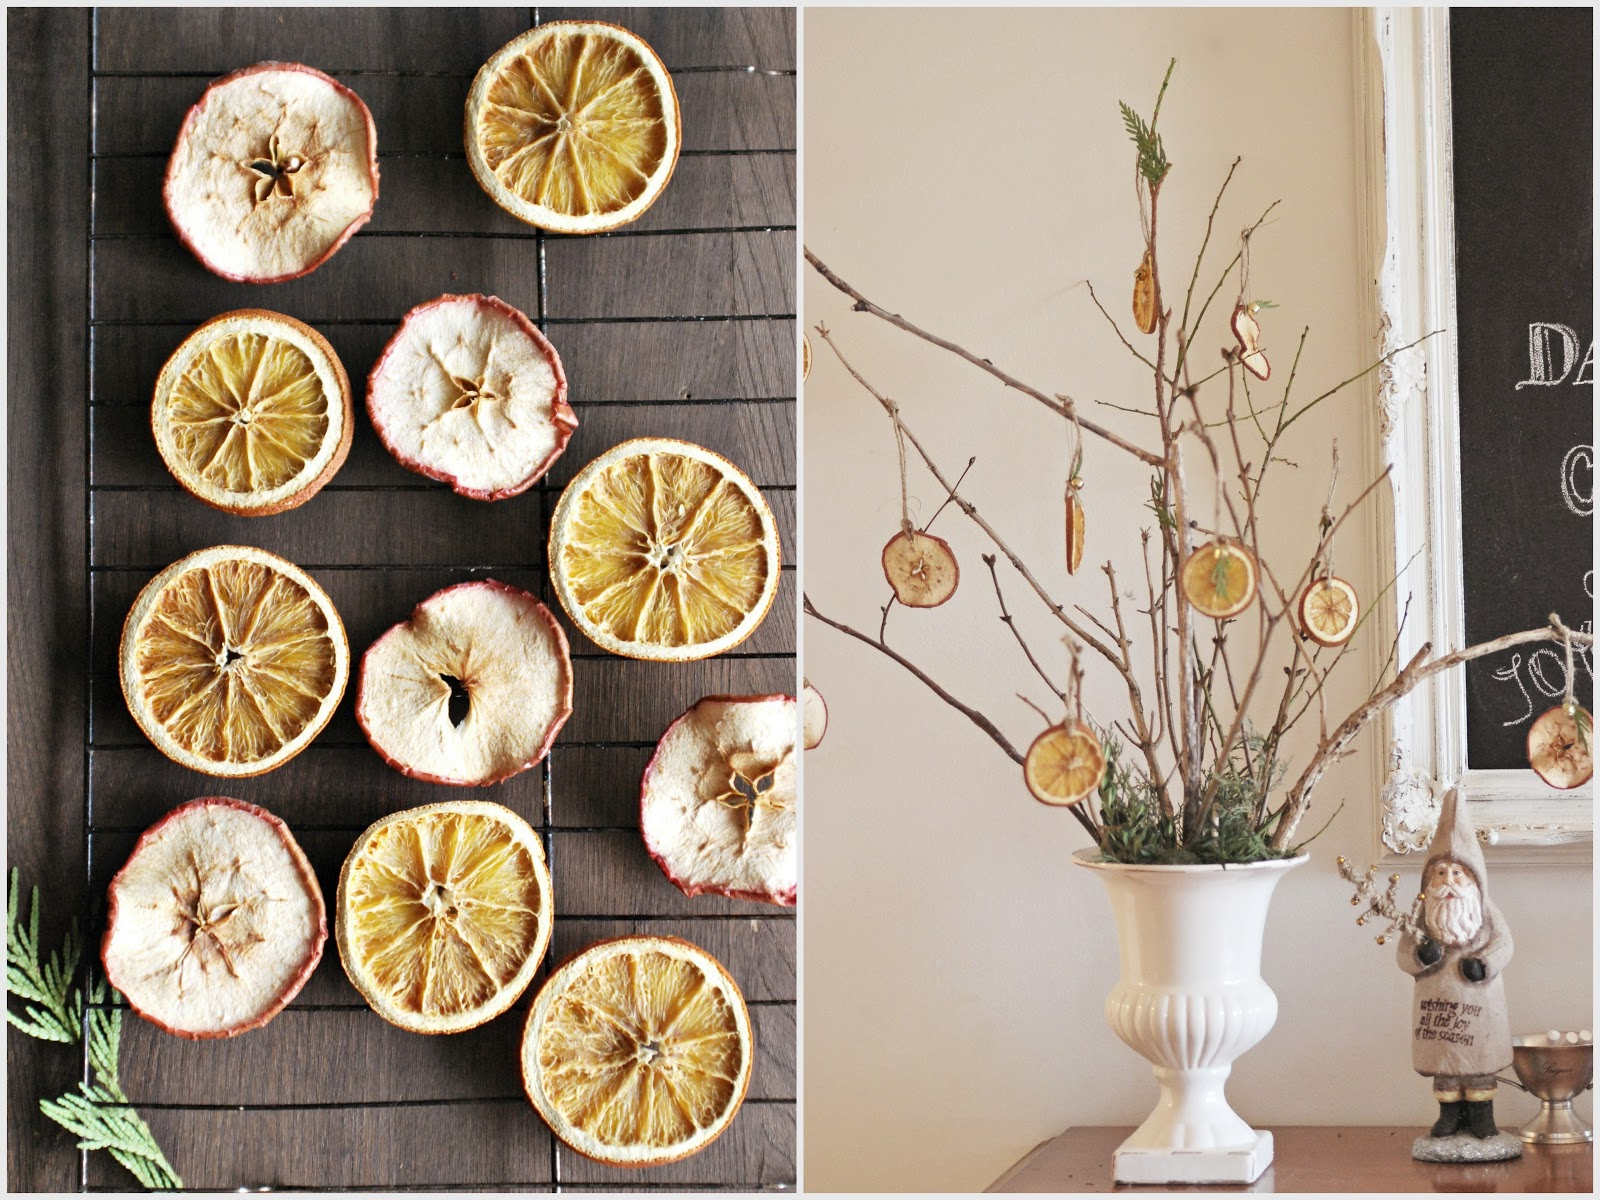 Drying Out Oranges Christmas Decorations Sylvias Simple Life 12 14 12